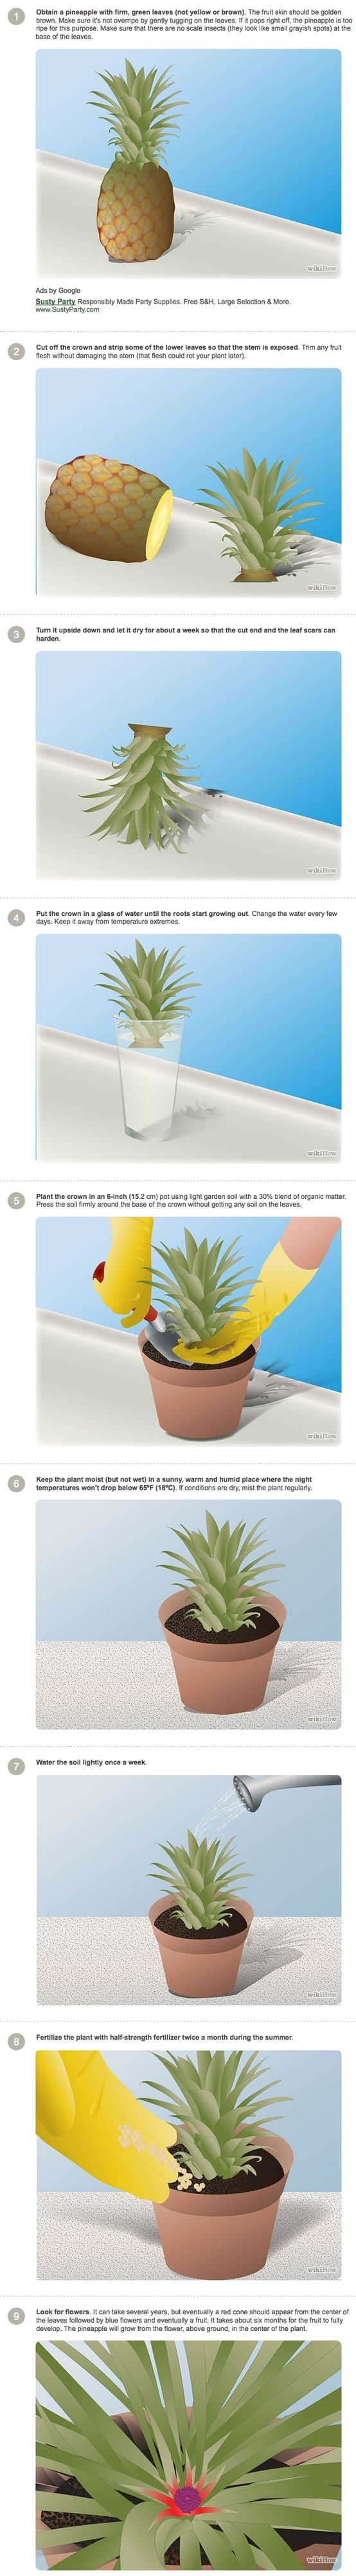 How to Grow a Pineapple Plant